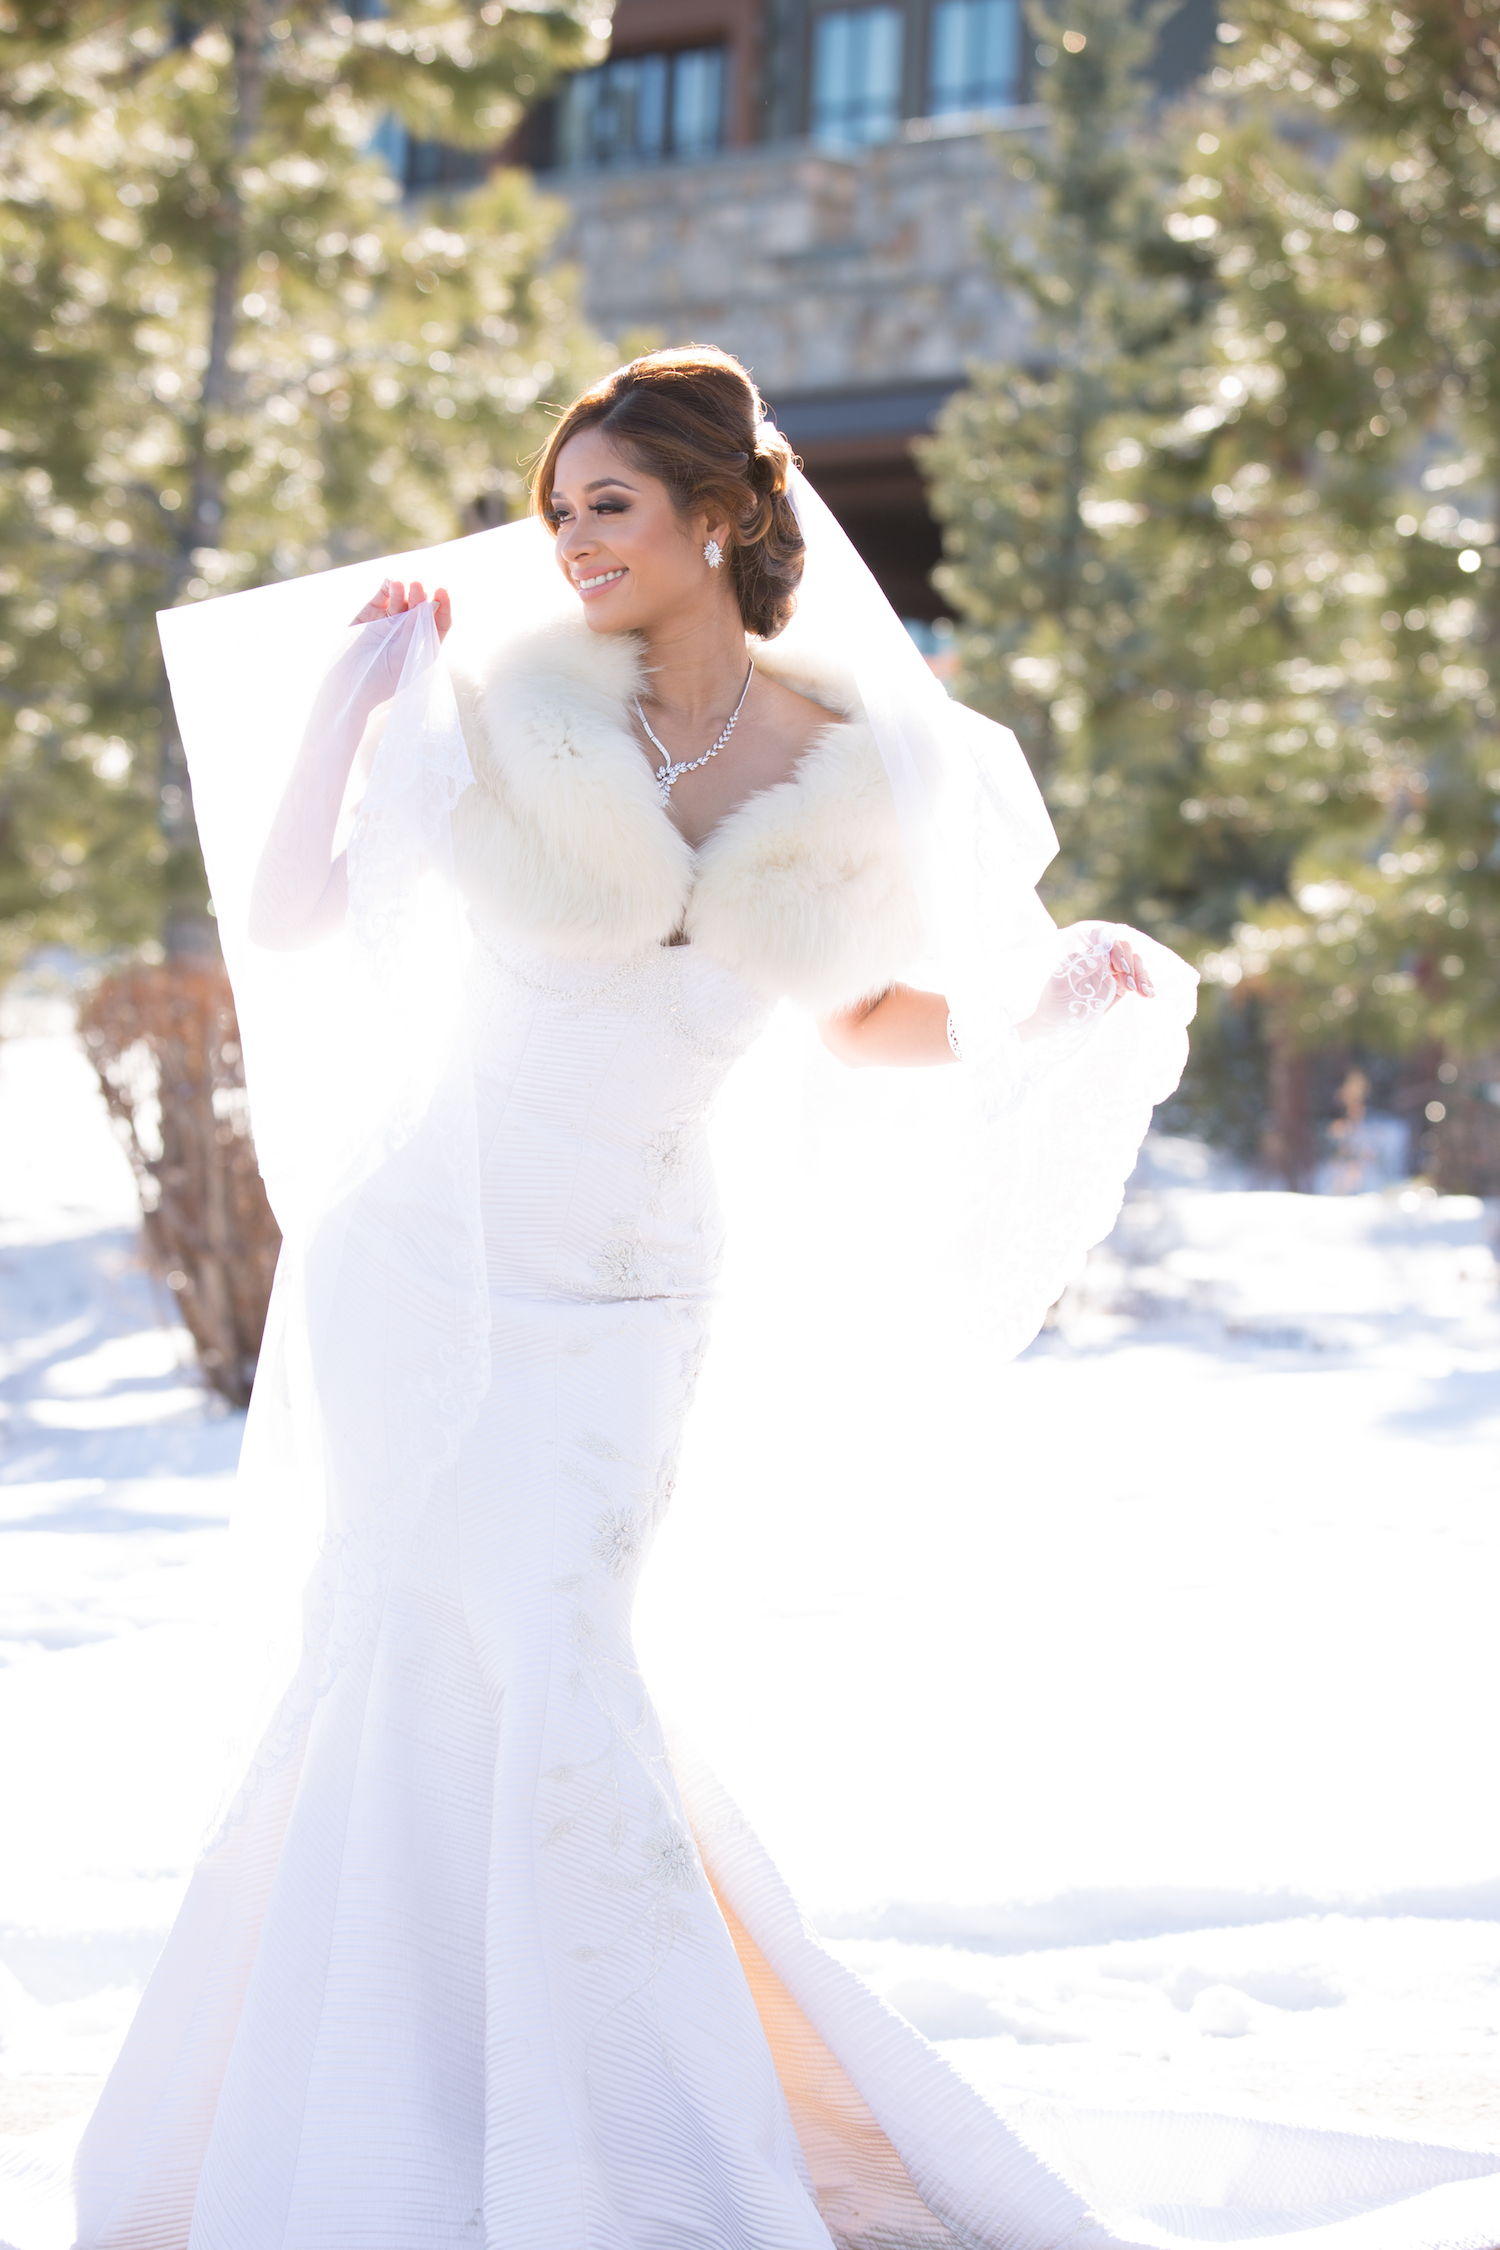 Winter Wedding Ritz Carlton Lake Tahoe | Sasha Photography04